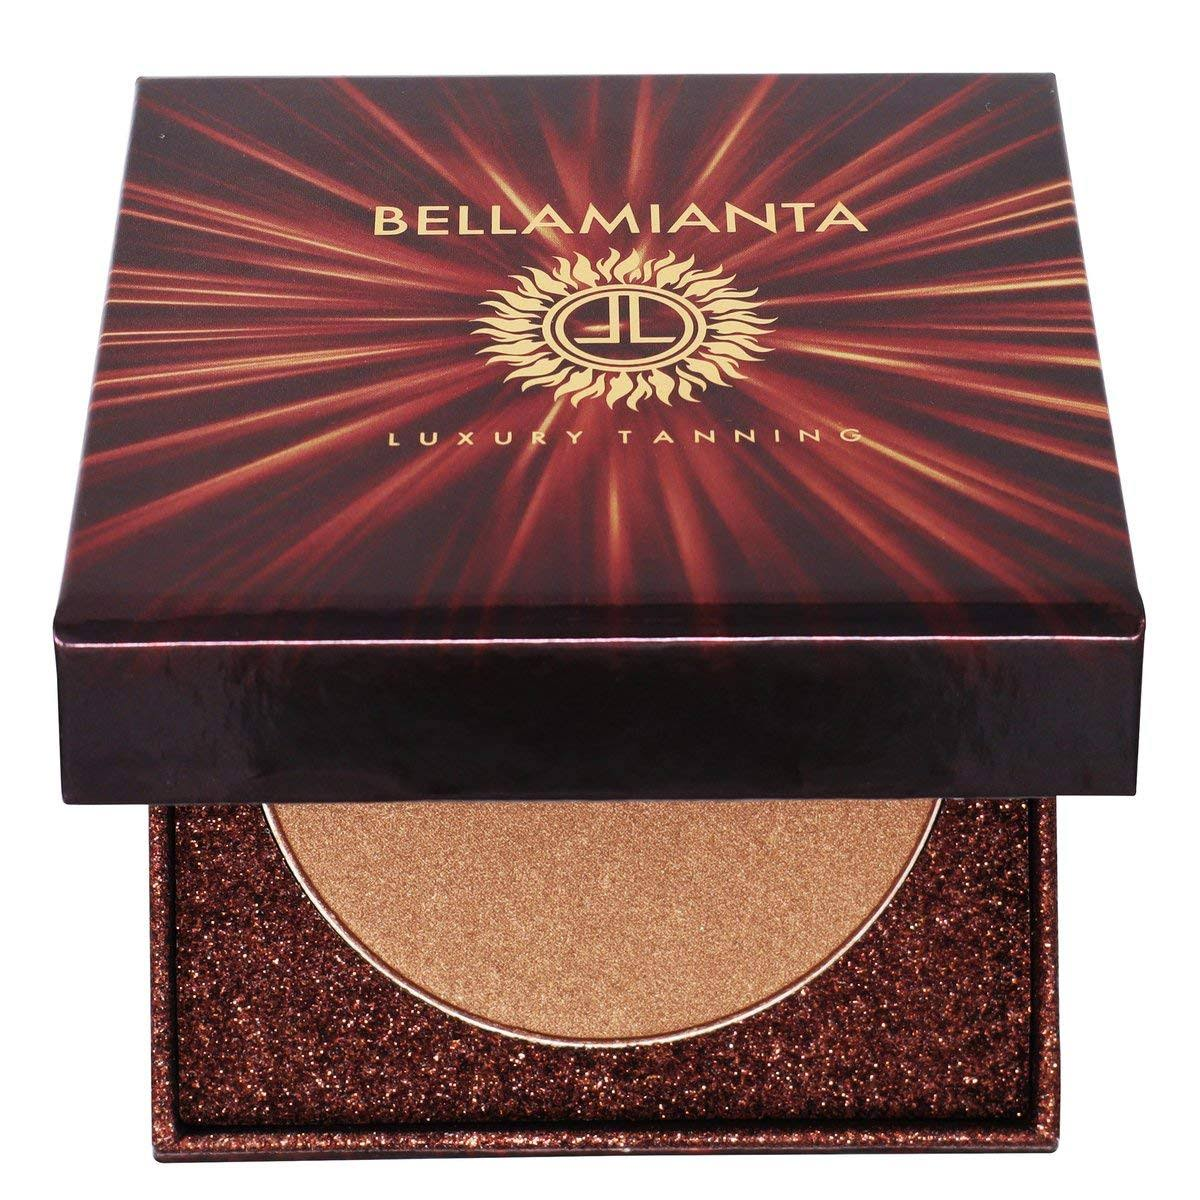 Bellamianta Skin Perfecting Illuminating Bronzing Powder 20g